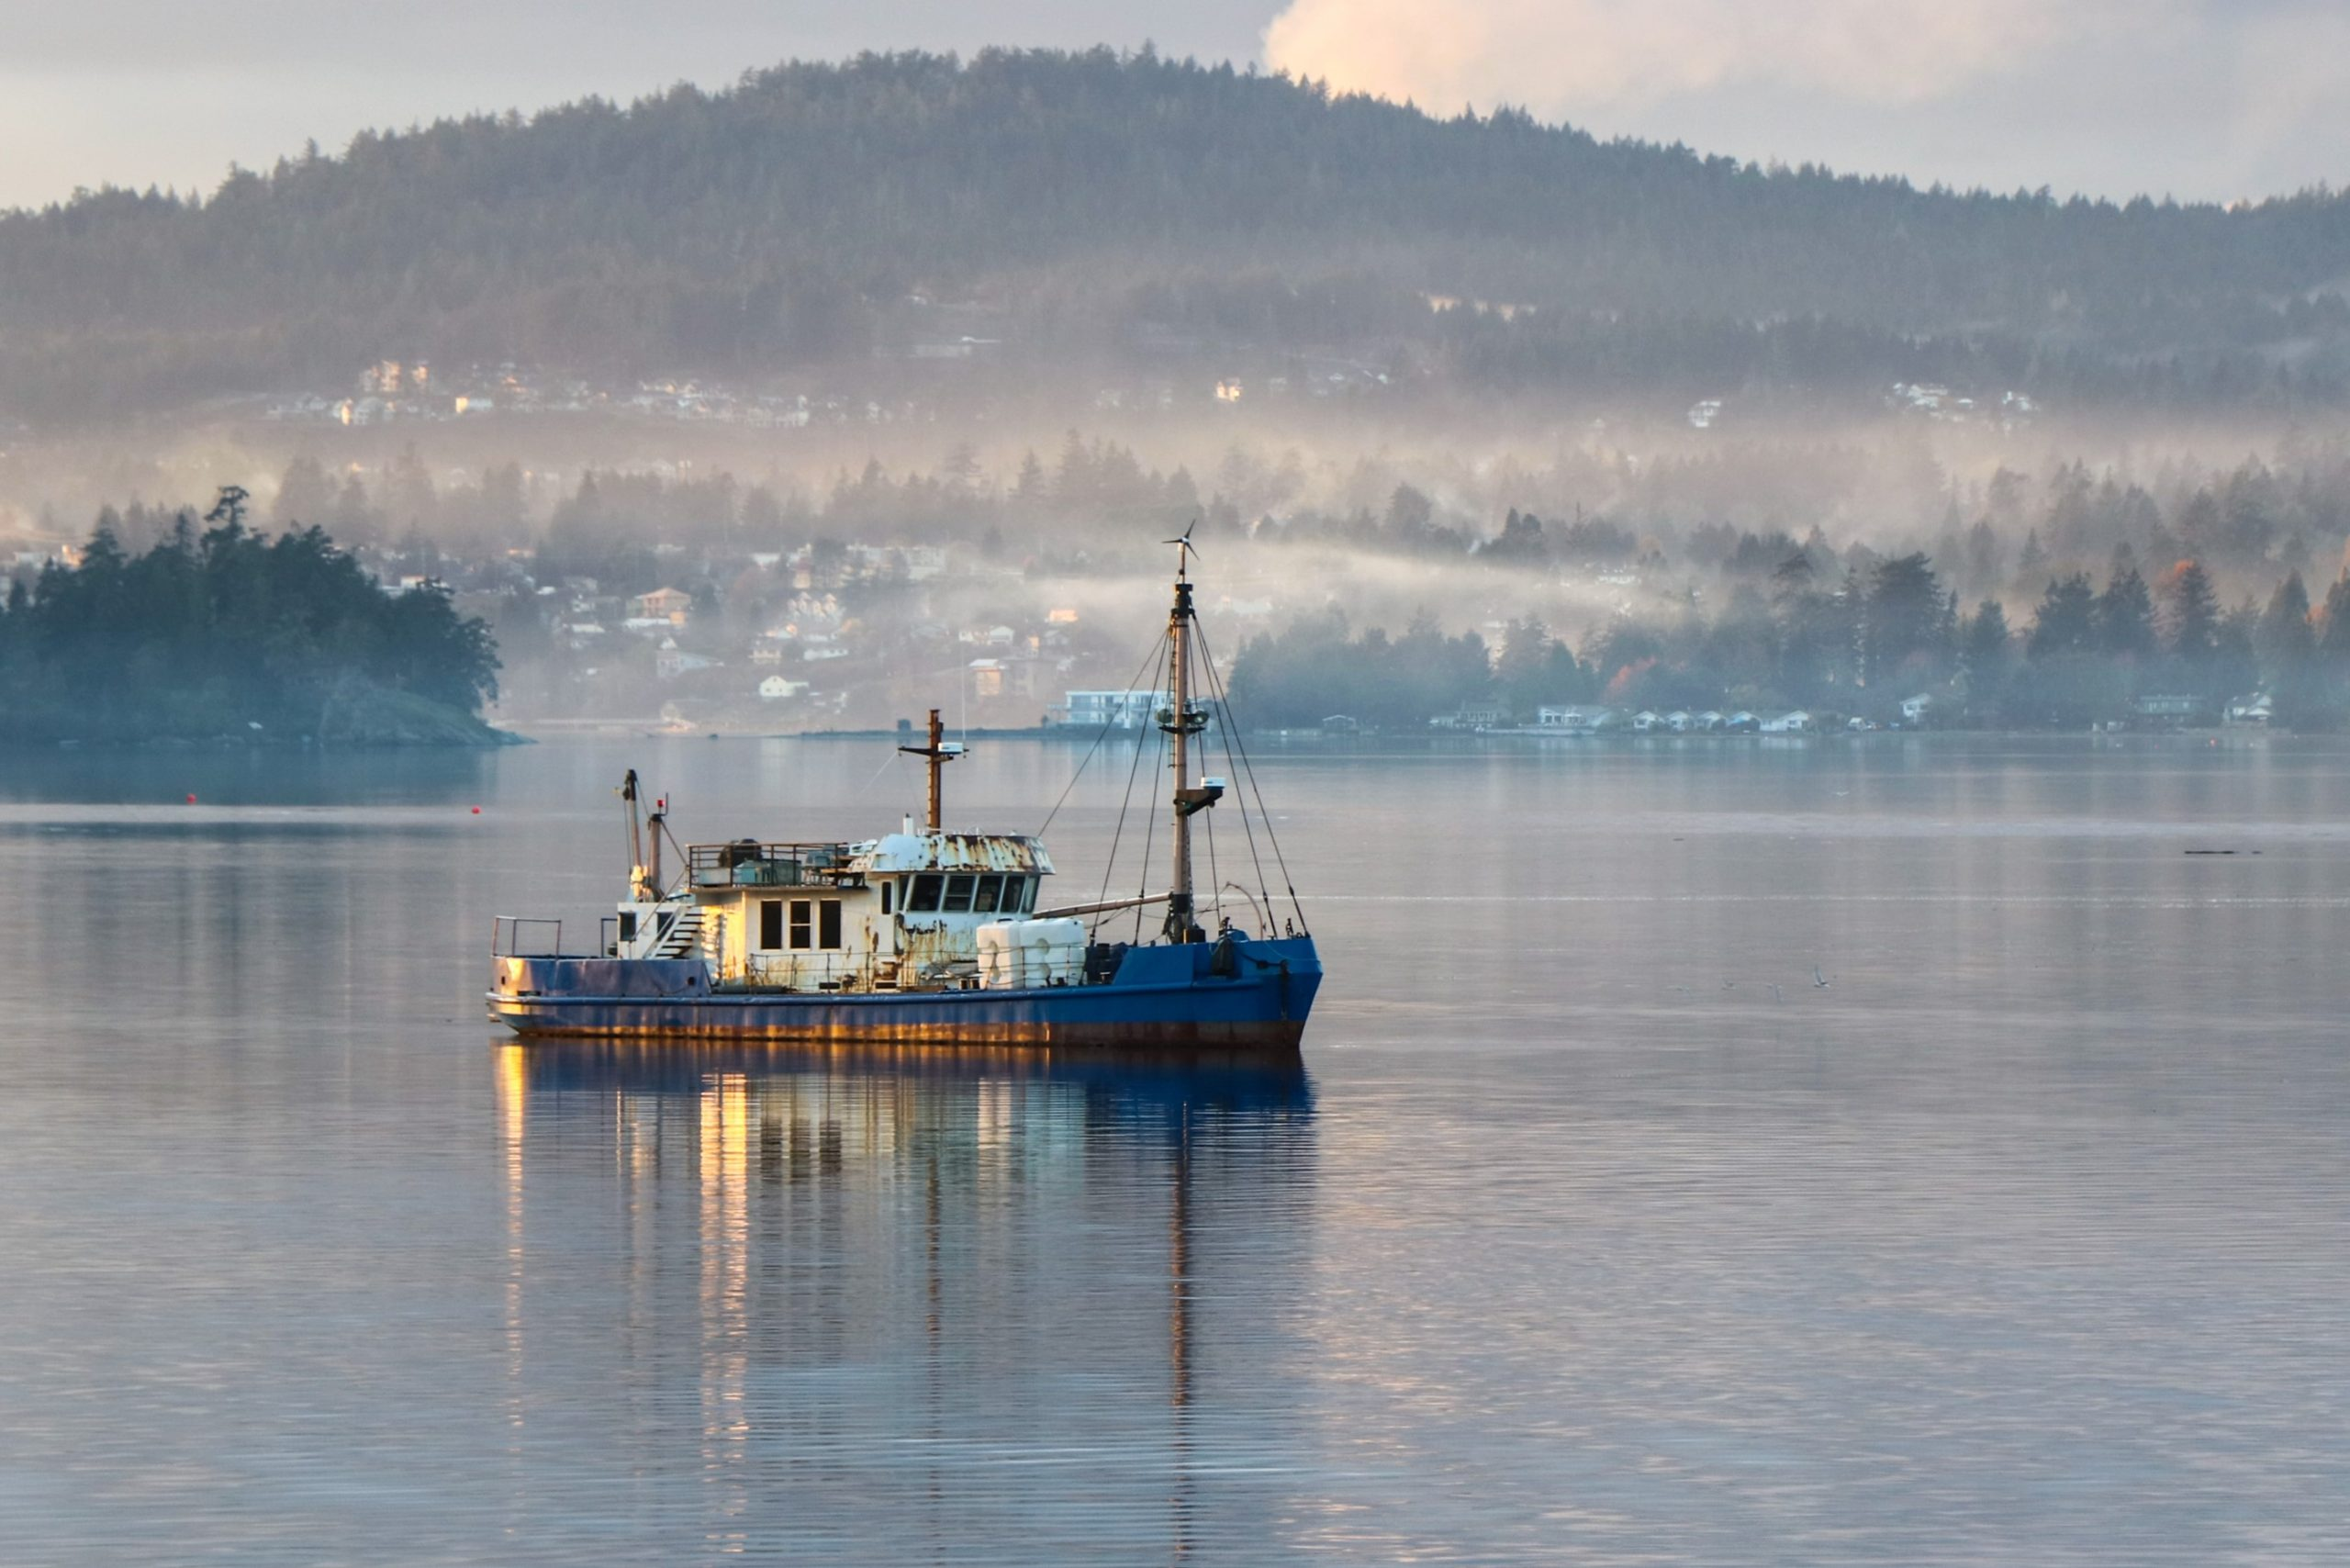 Photo of Trawler vessel at anchor in a calm bay at Roche Cove, Sooke, British Columbia.